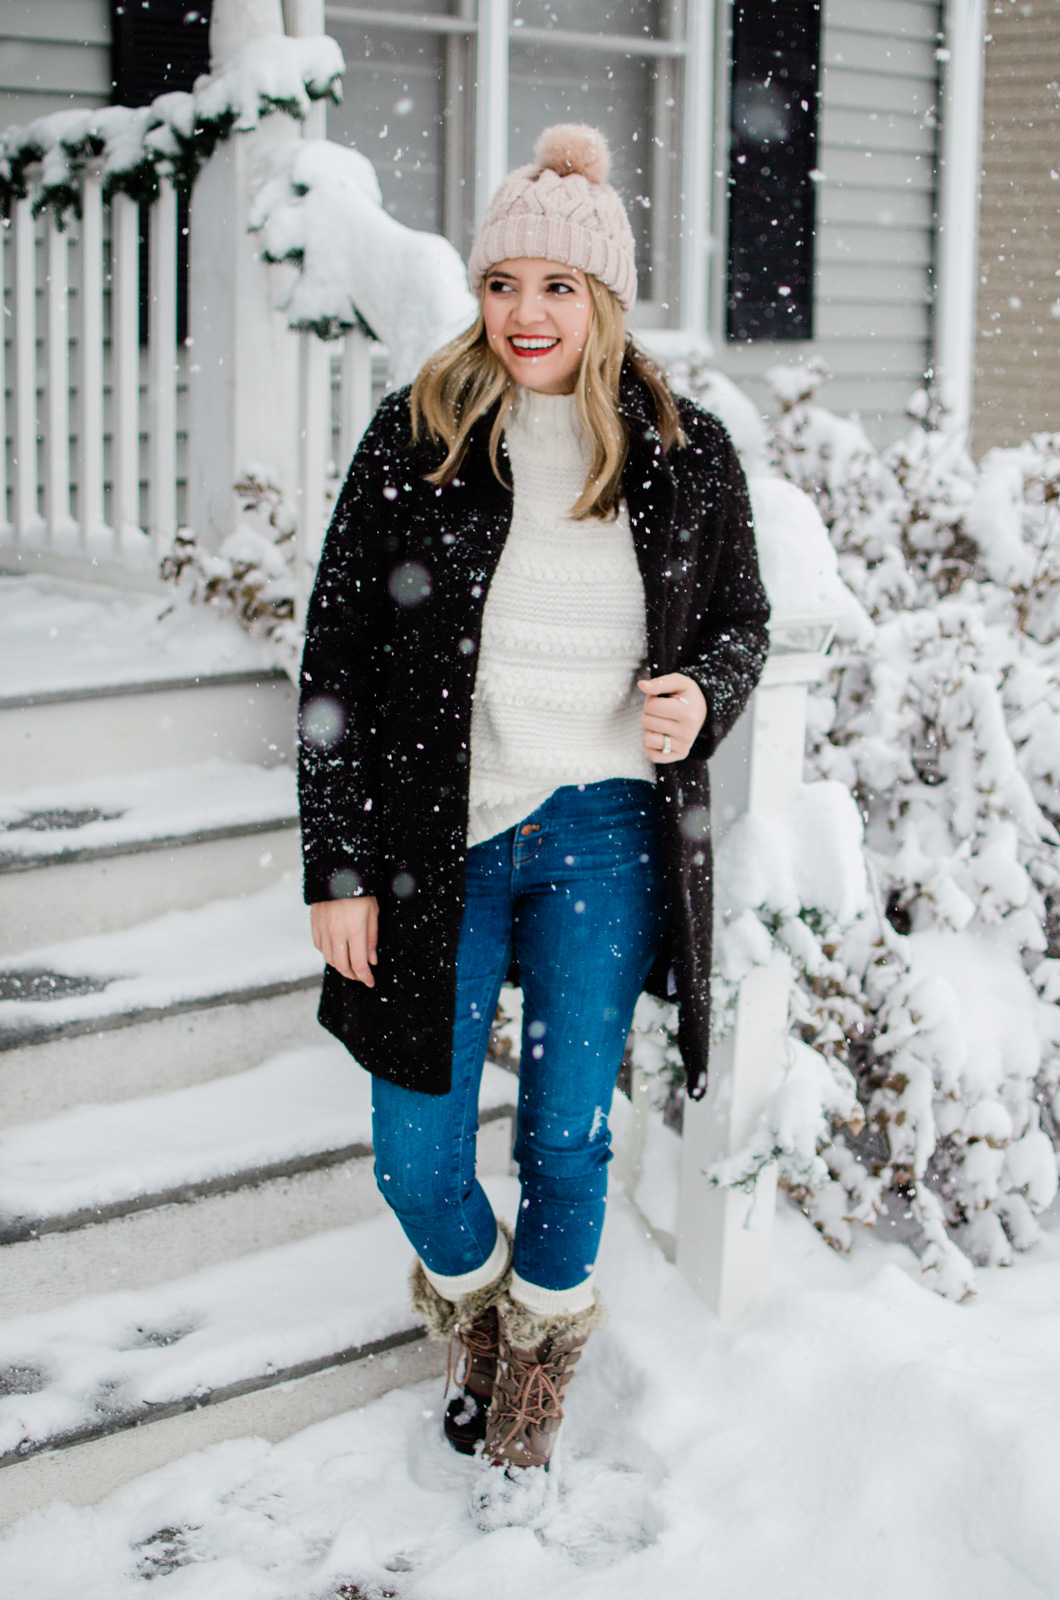 fafa2b57f cute snow day outfit - five snow day outfits for winter! bylaurenm.com